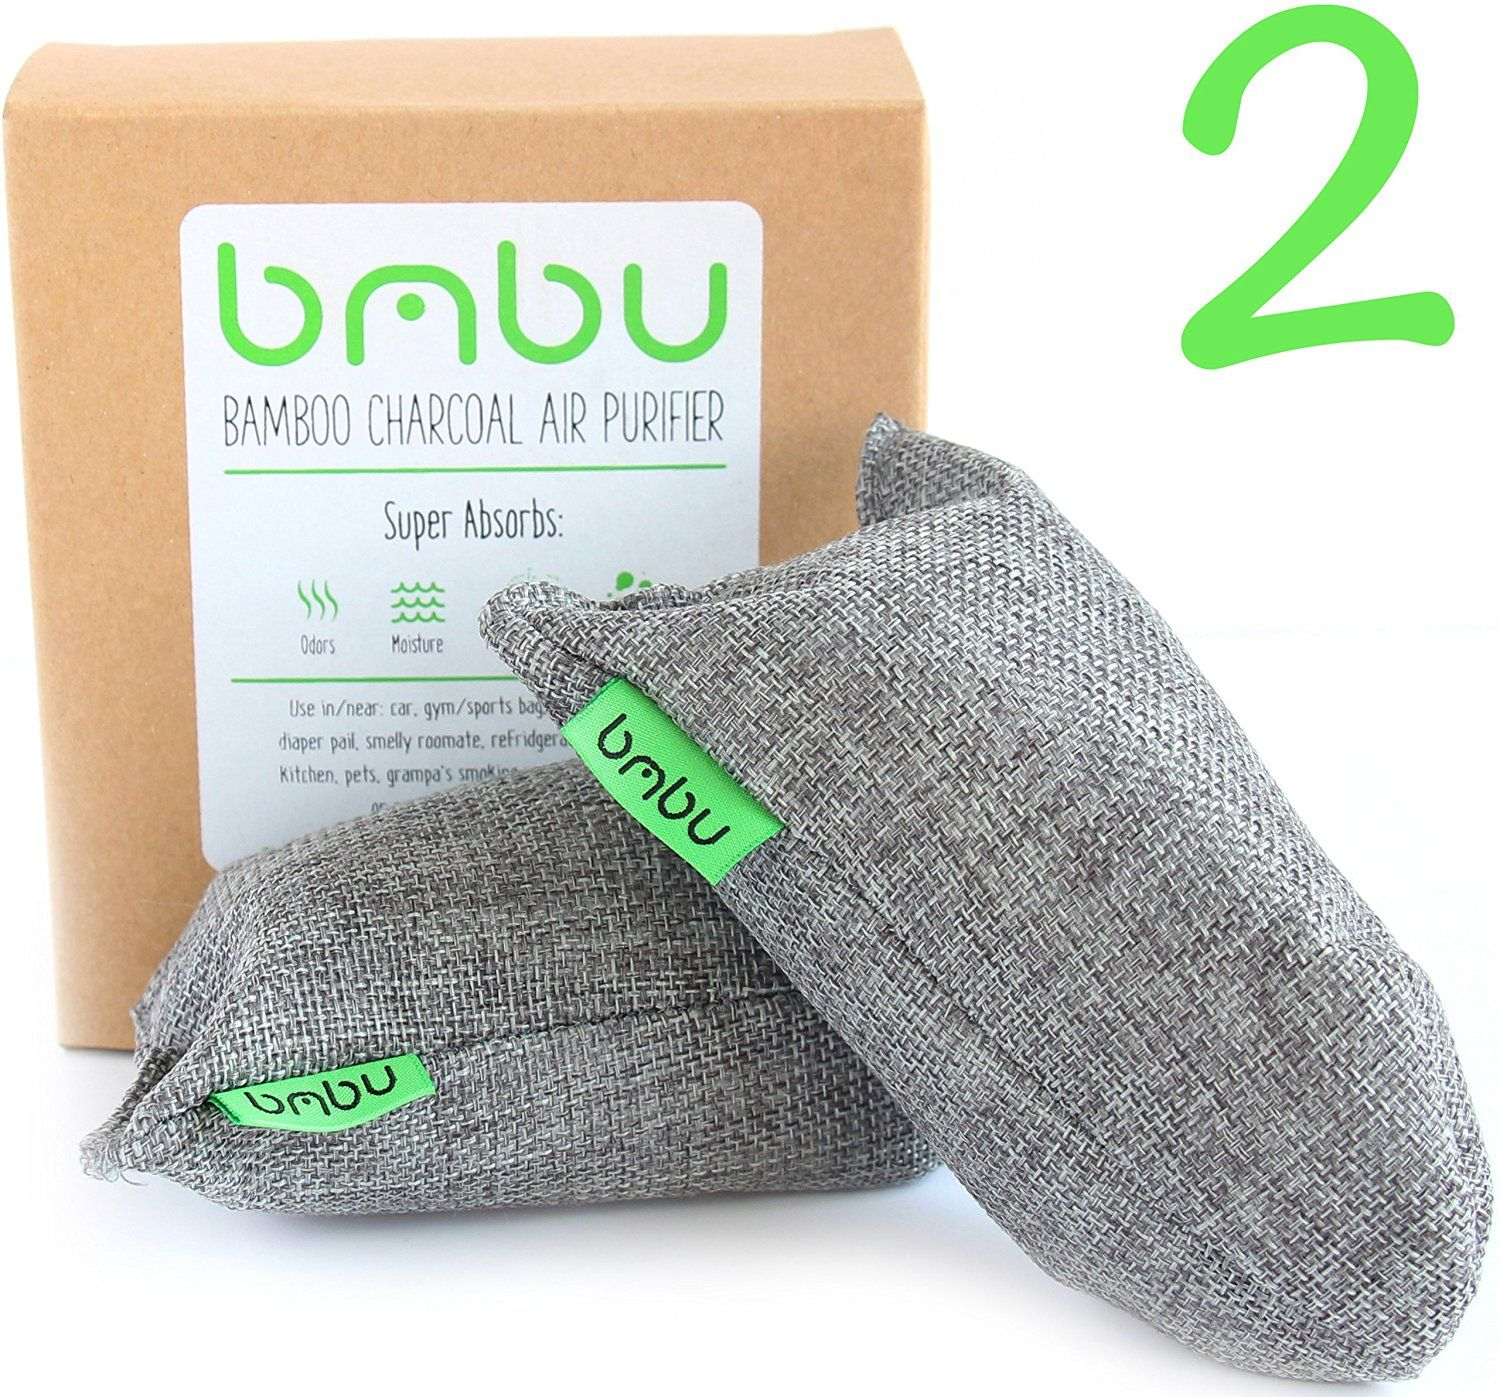 Bamboo Charcoal Air Purifiers (100g X 2 Pack